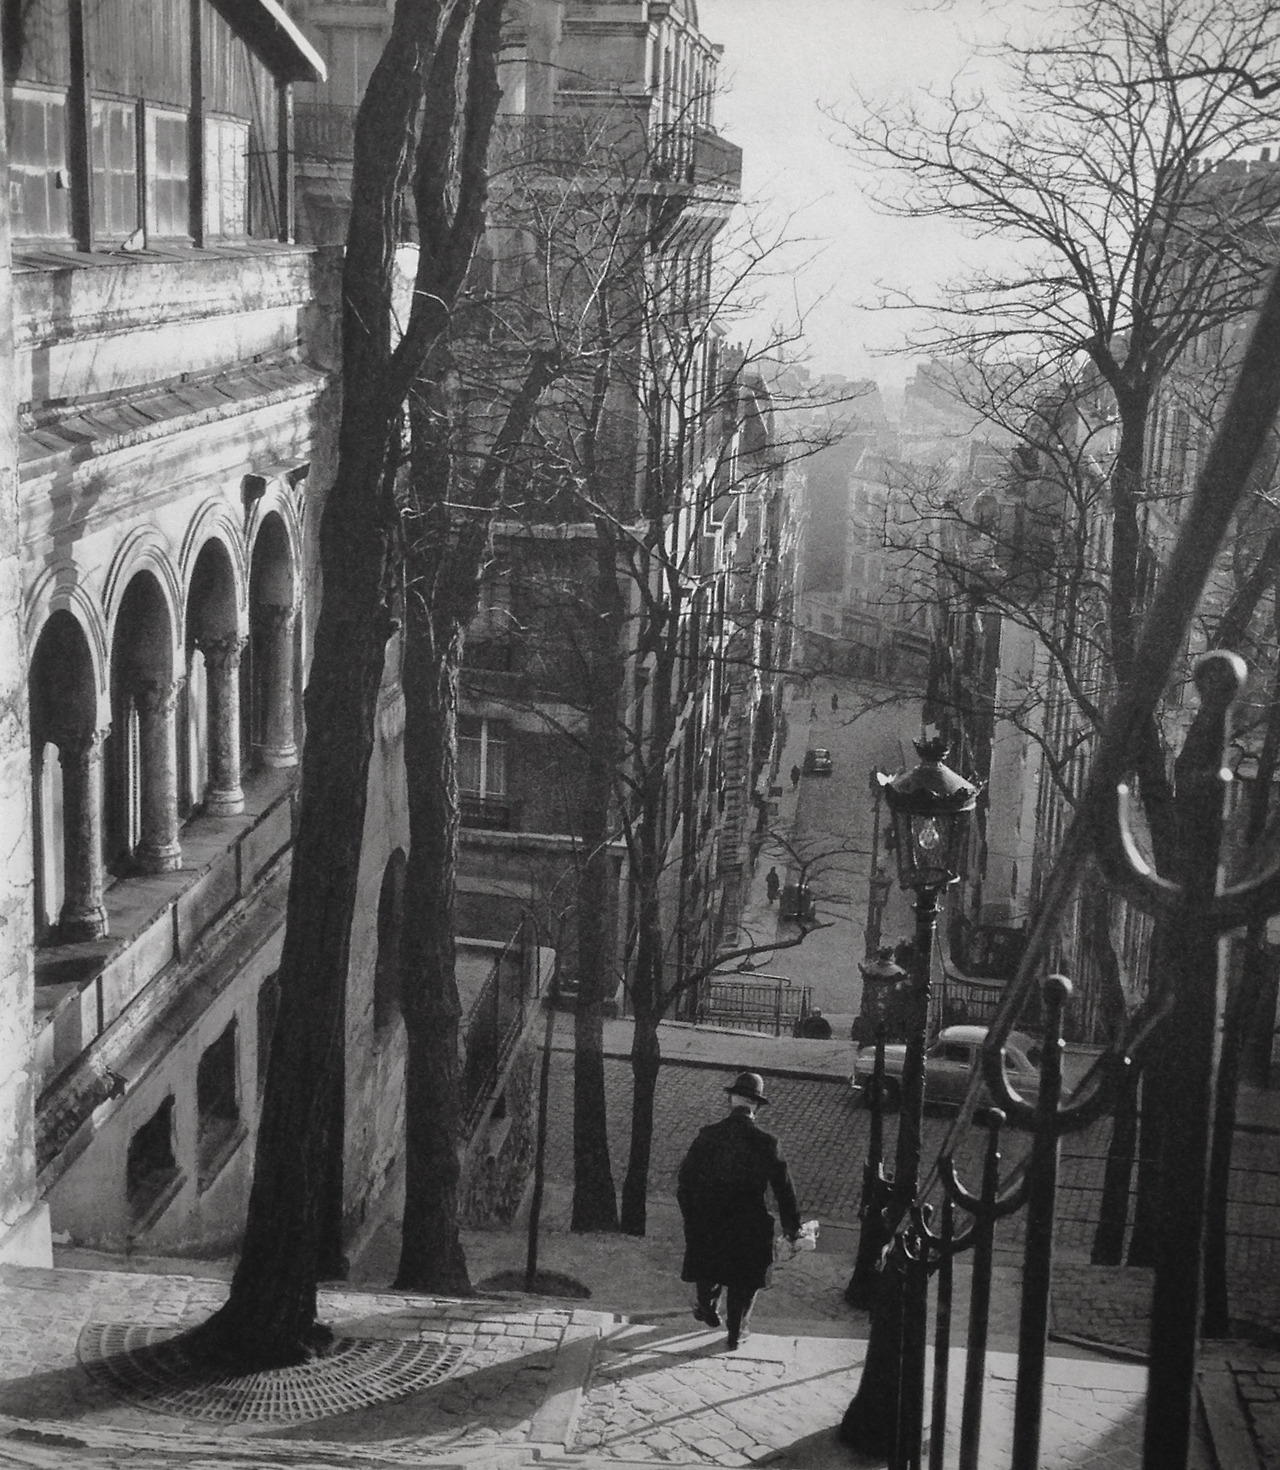 Paris in 1950s by Patrice Molinard